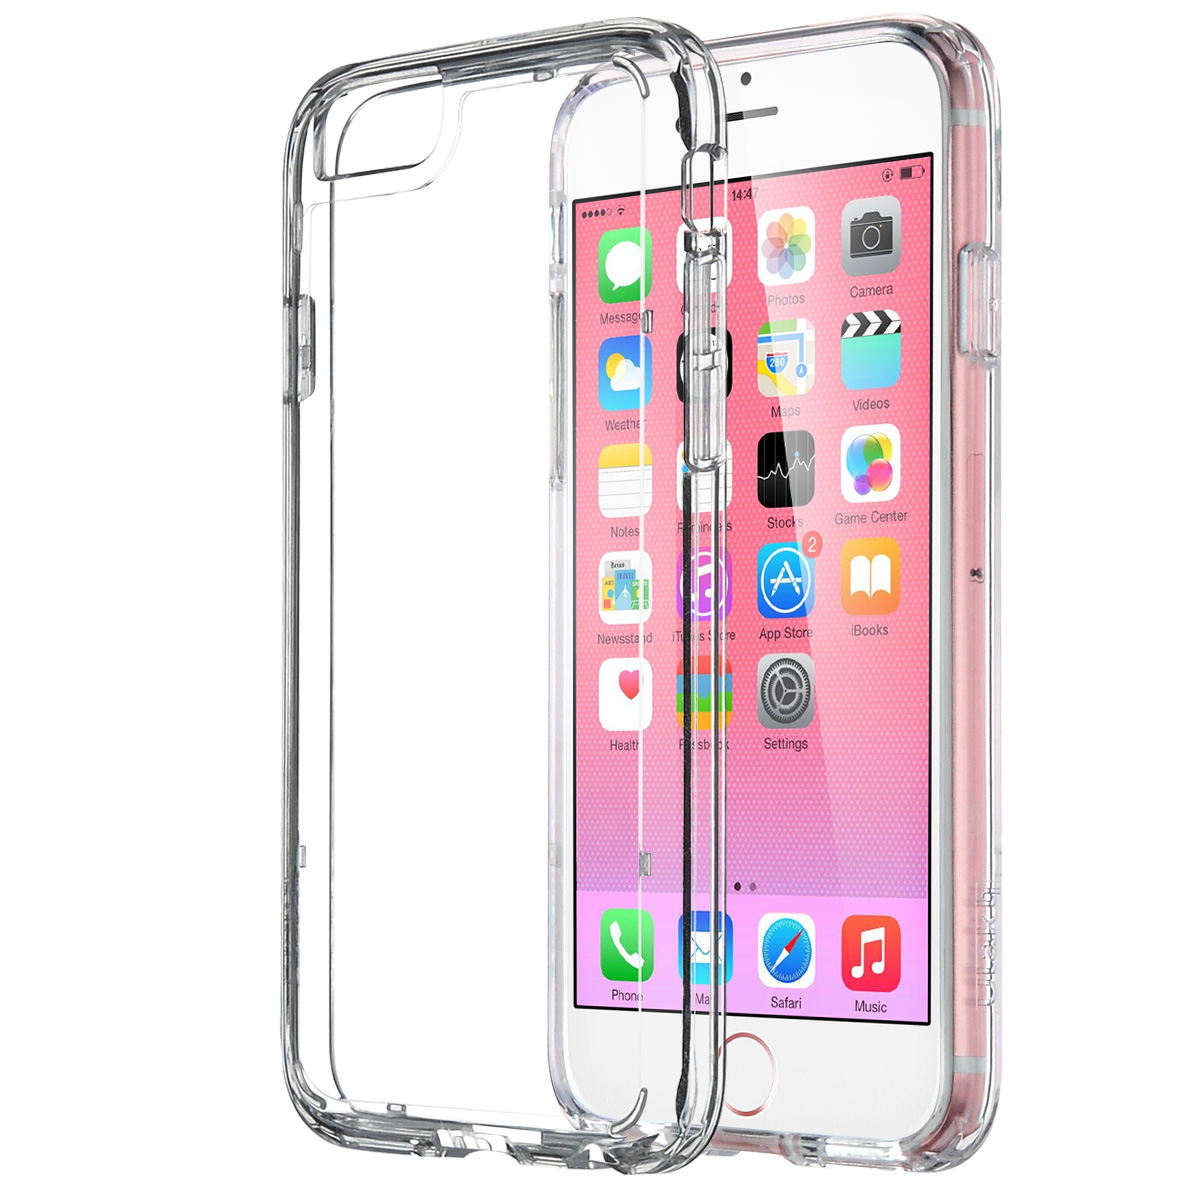 Apple Iphone 6 6s Plus 55 Case Ulak Clear Slim Iphone 6 Plus